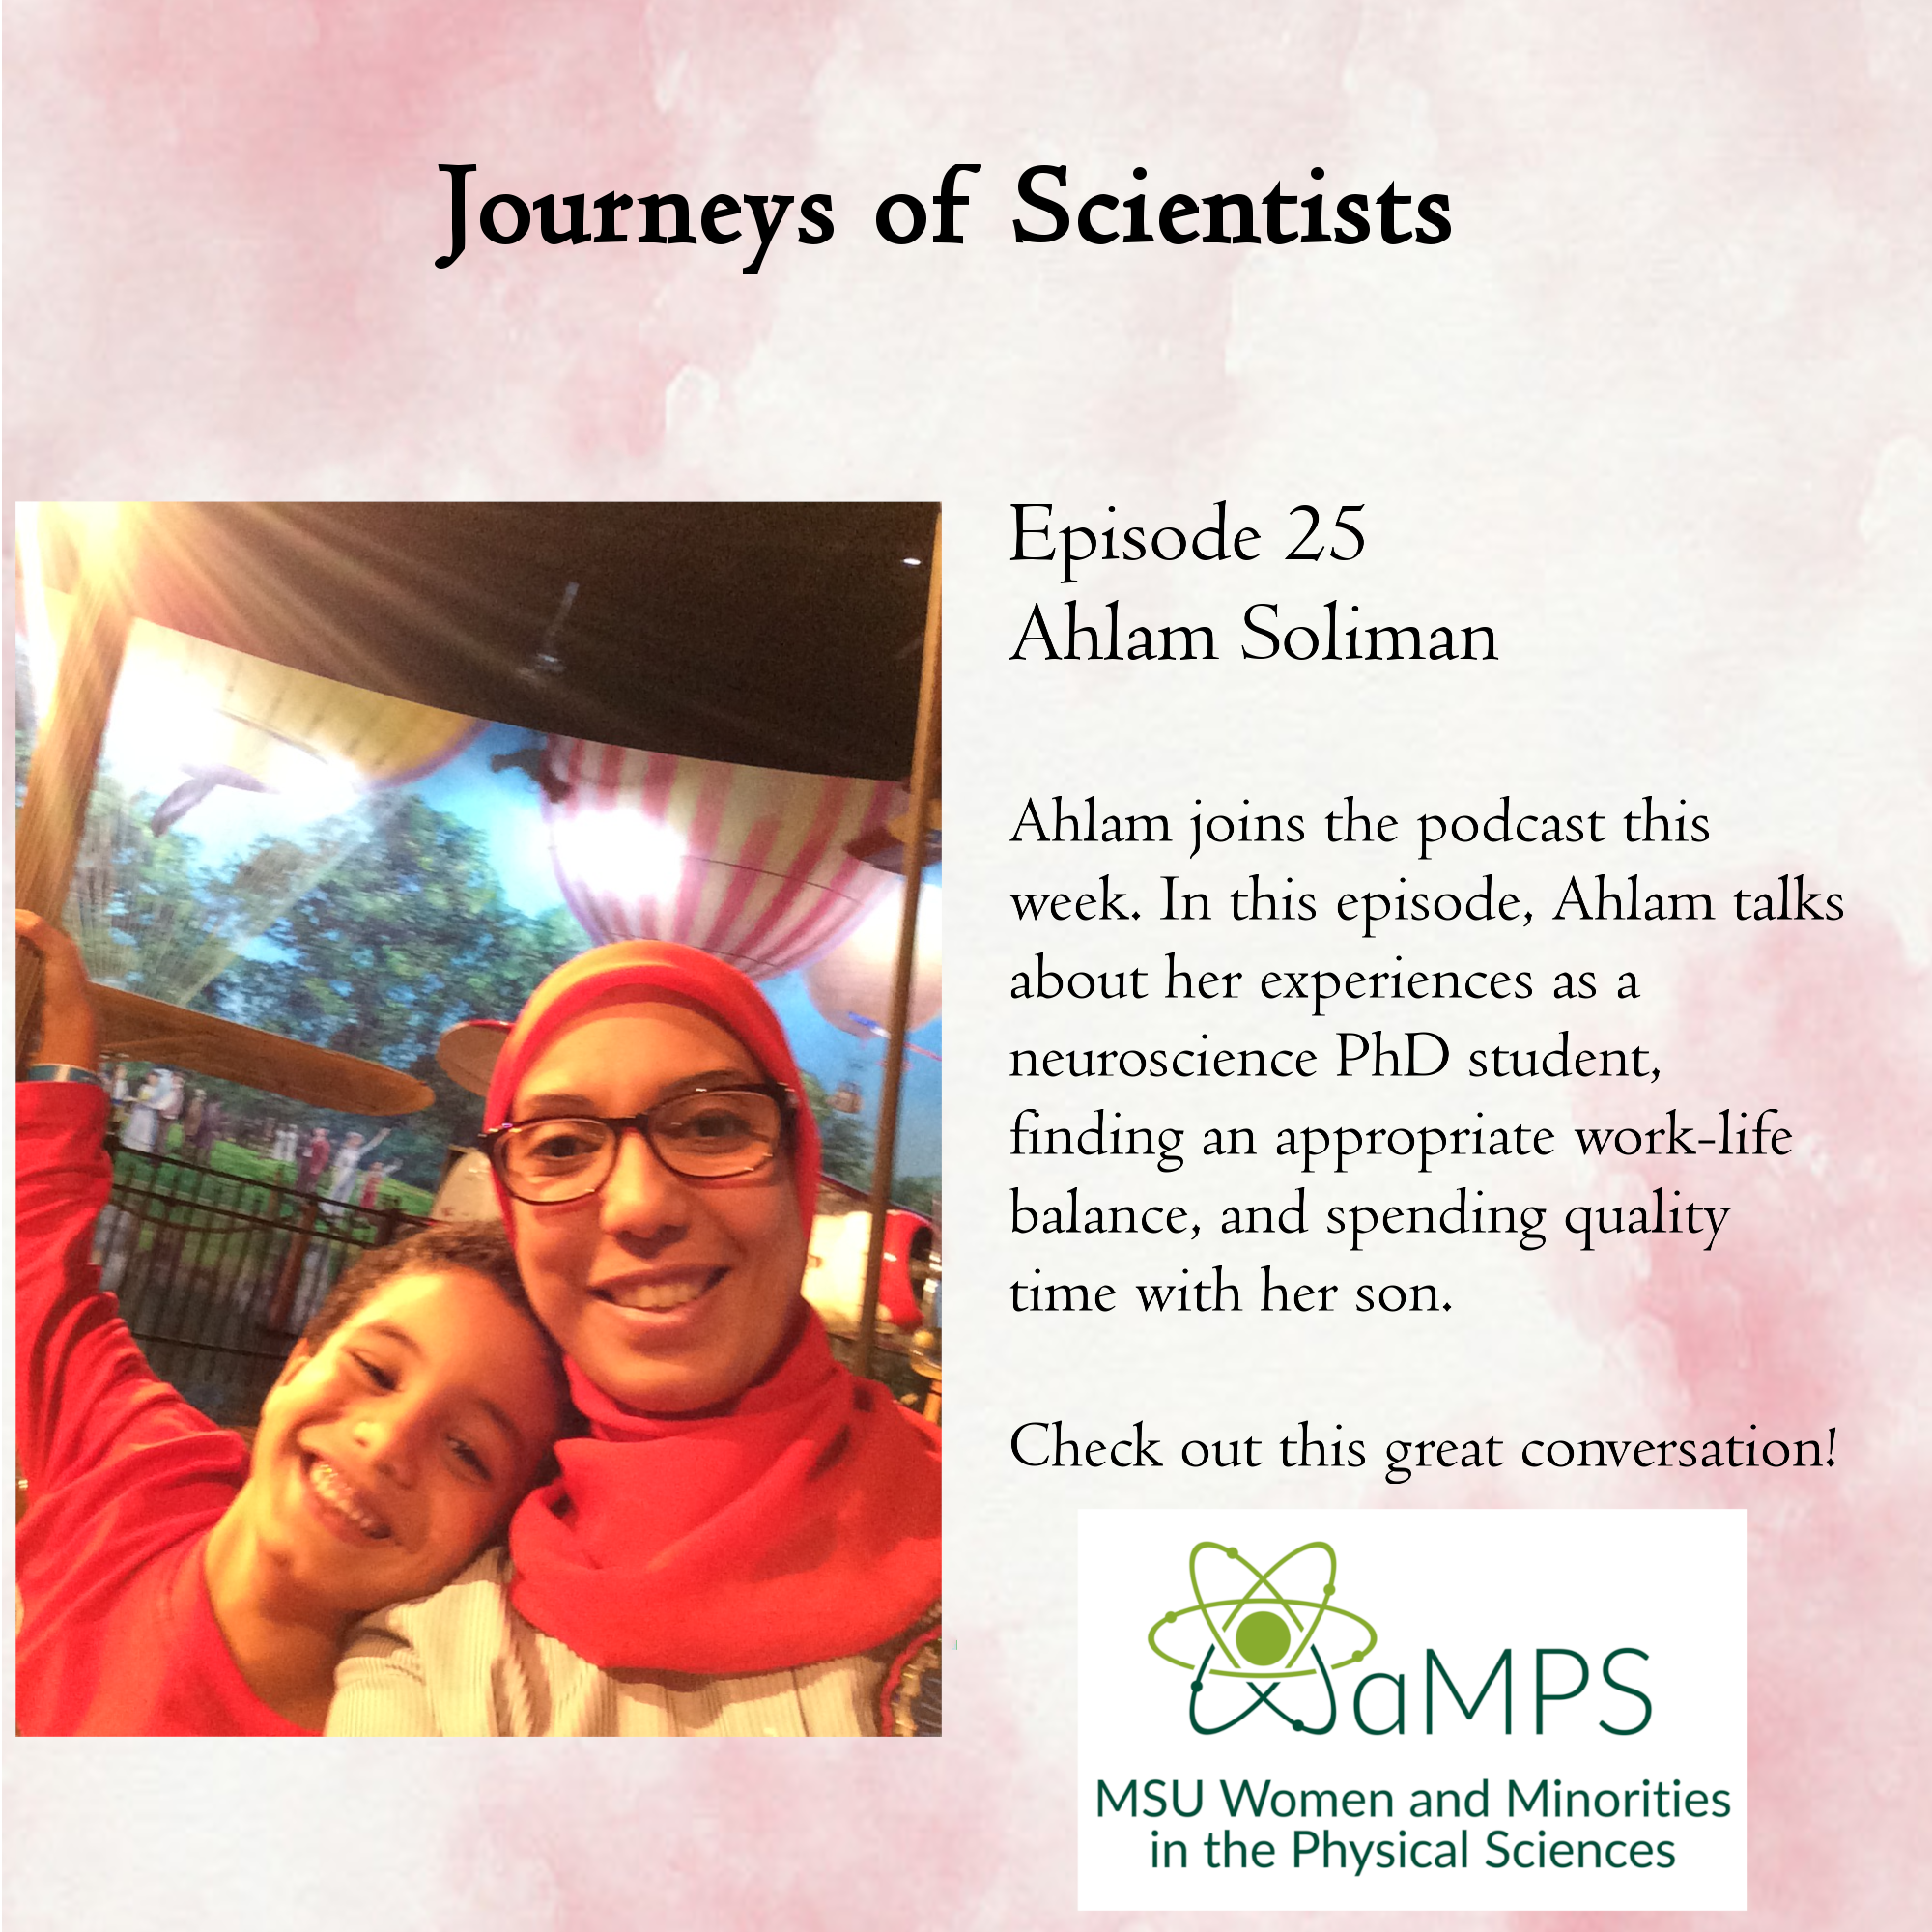 Ahlam Soliman is a fourth year PhD student in the Neuroscience program at Michigan State University. Her research focuses on studying the pathological culprit of Alzheimer disease using experimental models.